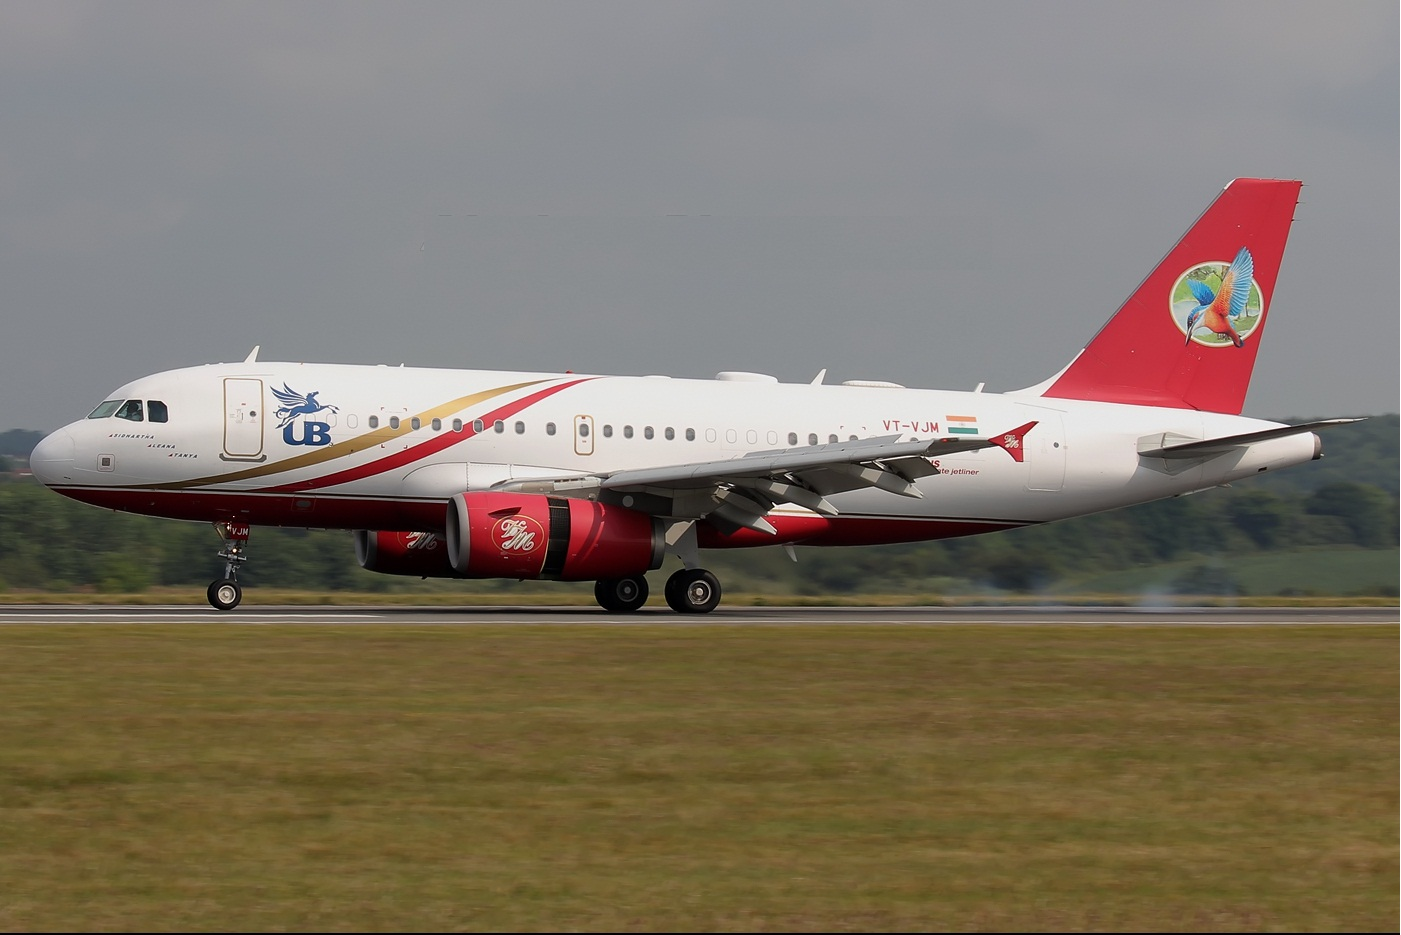 Plane Kingfisher Airlines